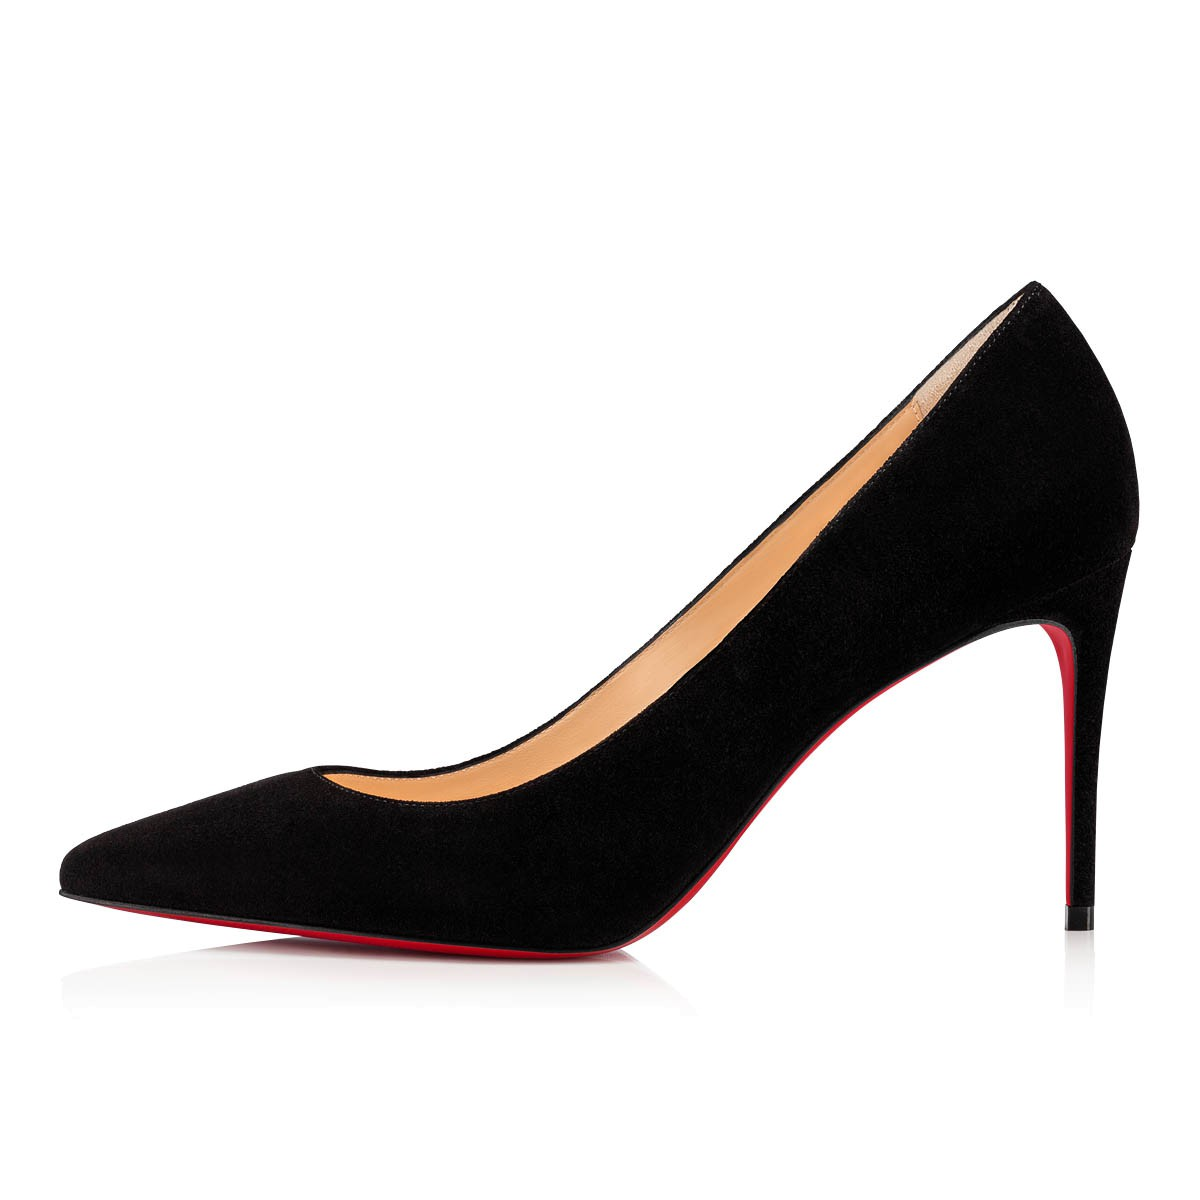 Shoes - Kate - Christian Louboutin